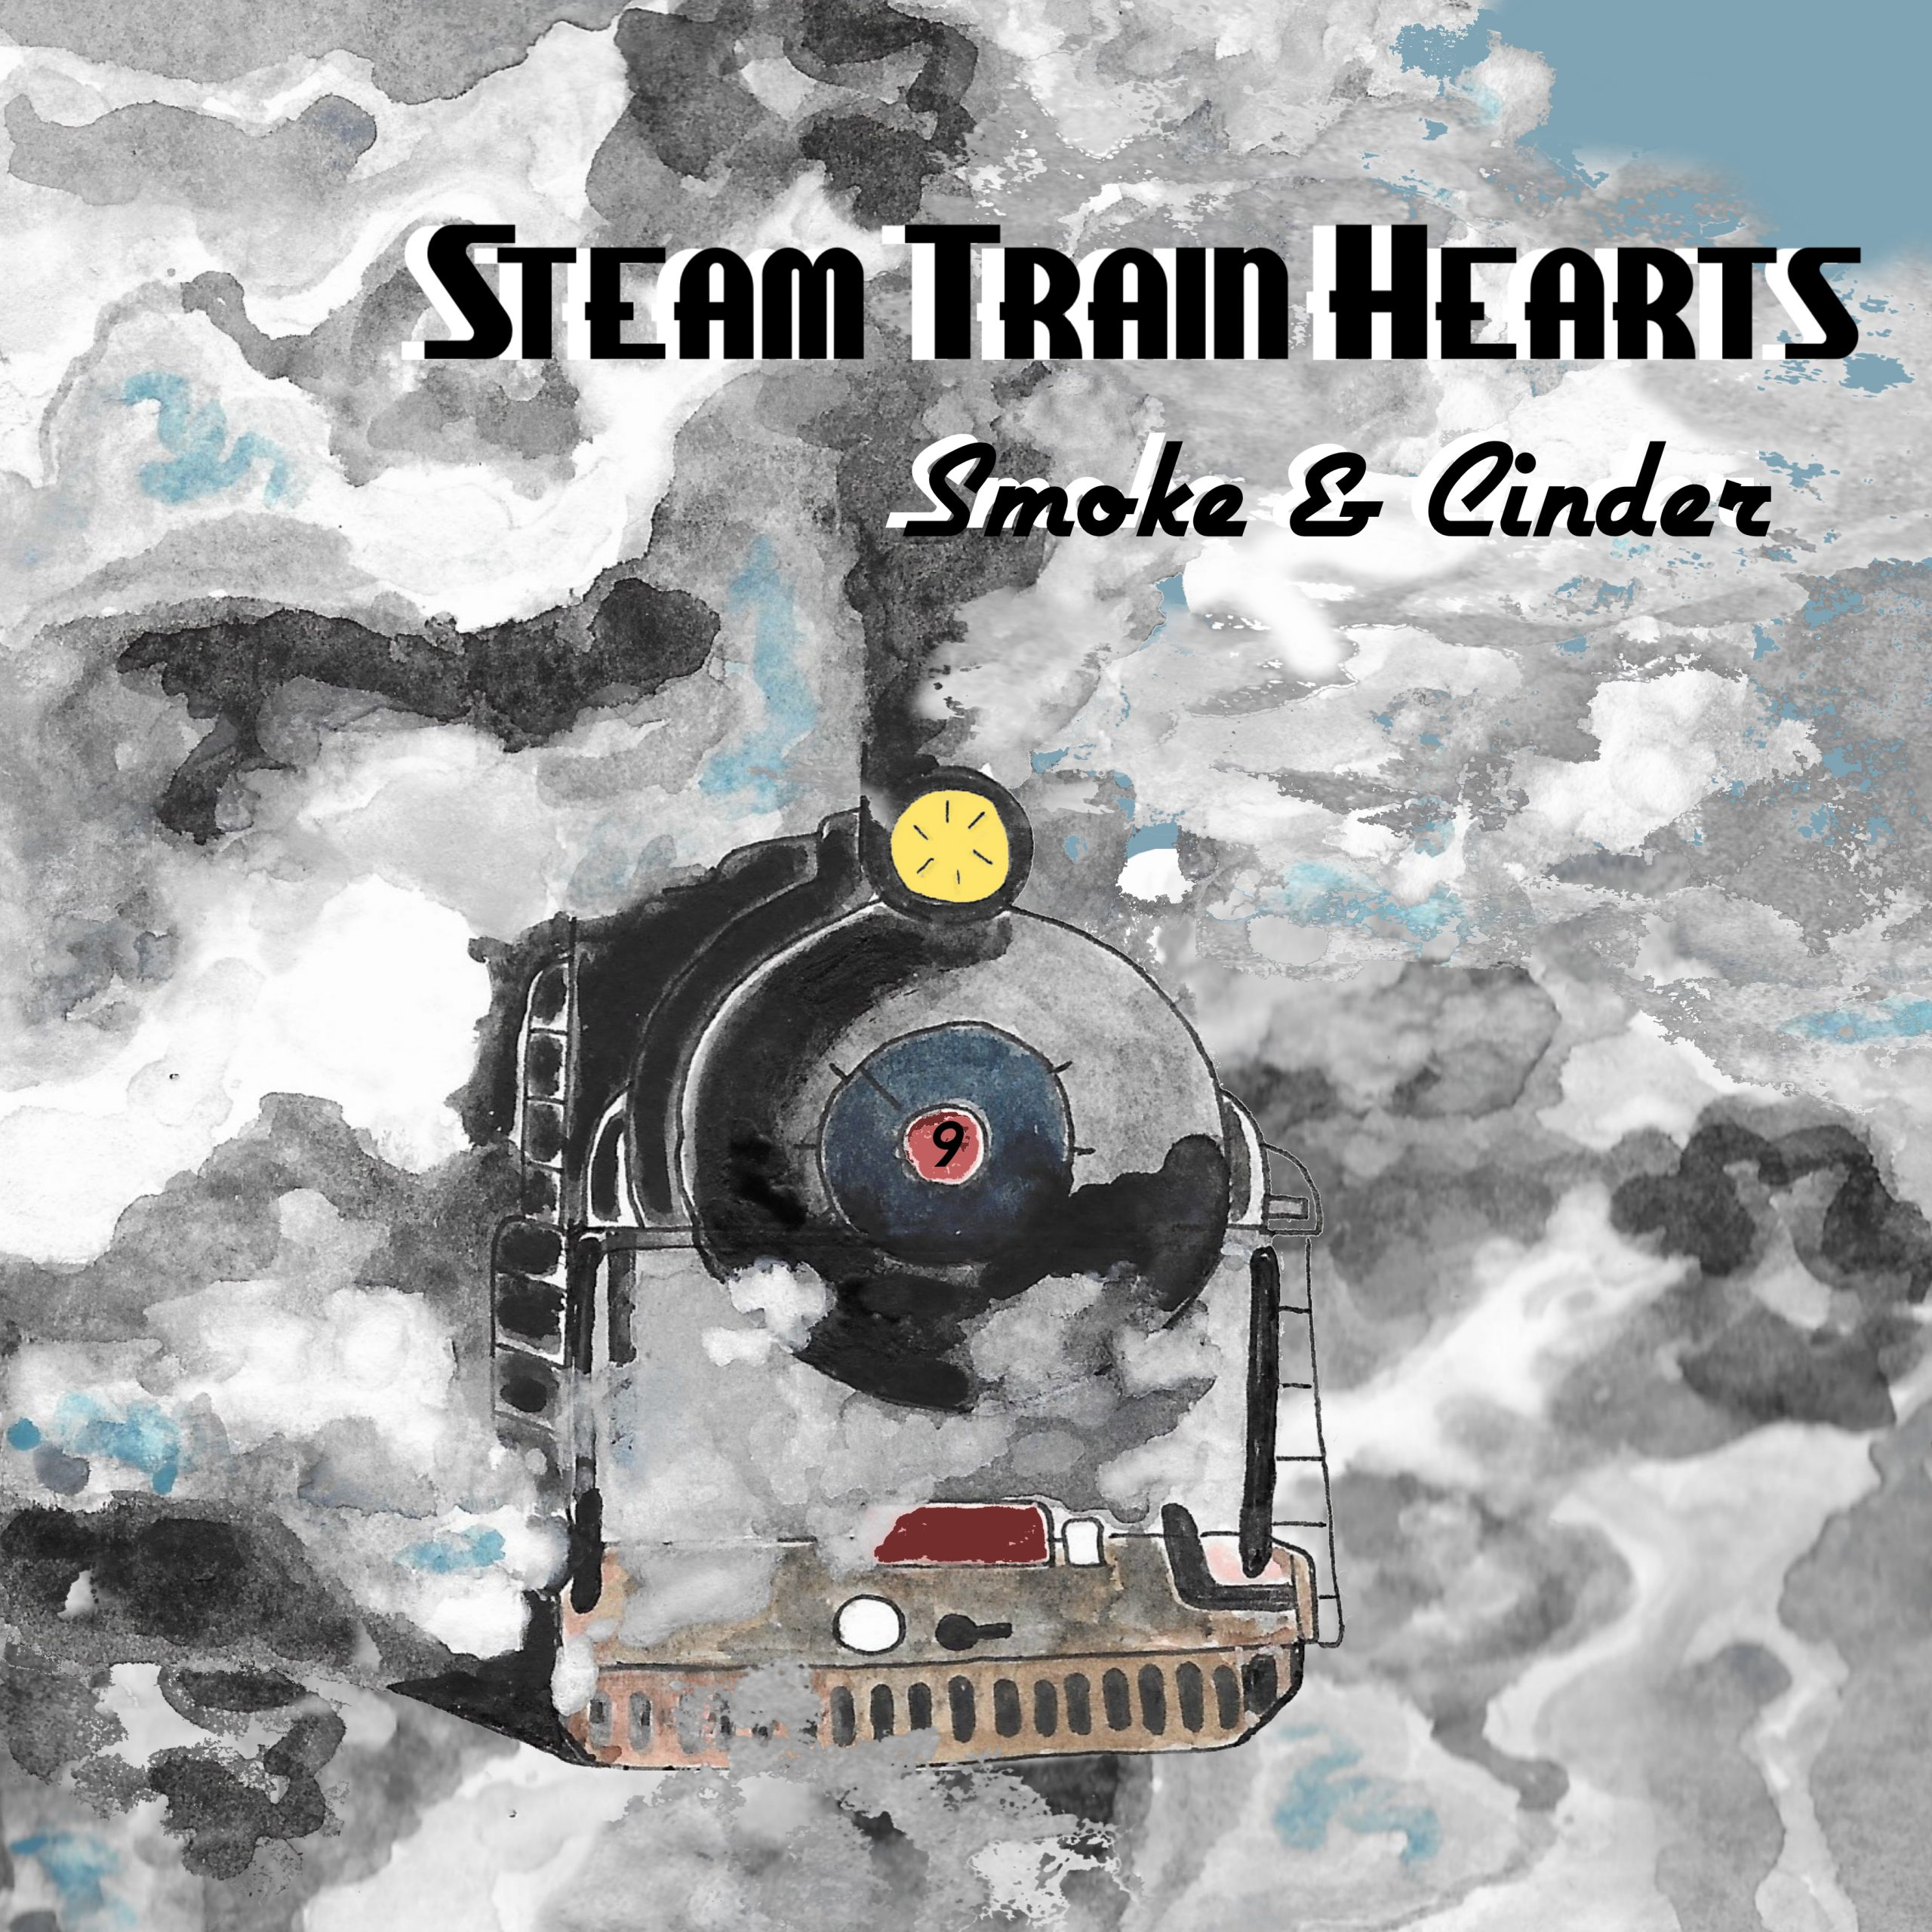 How Steam Train Hearts' Latest Album Is an Album for Everyone